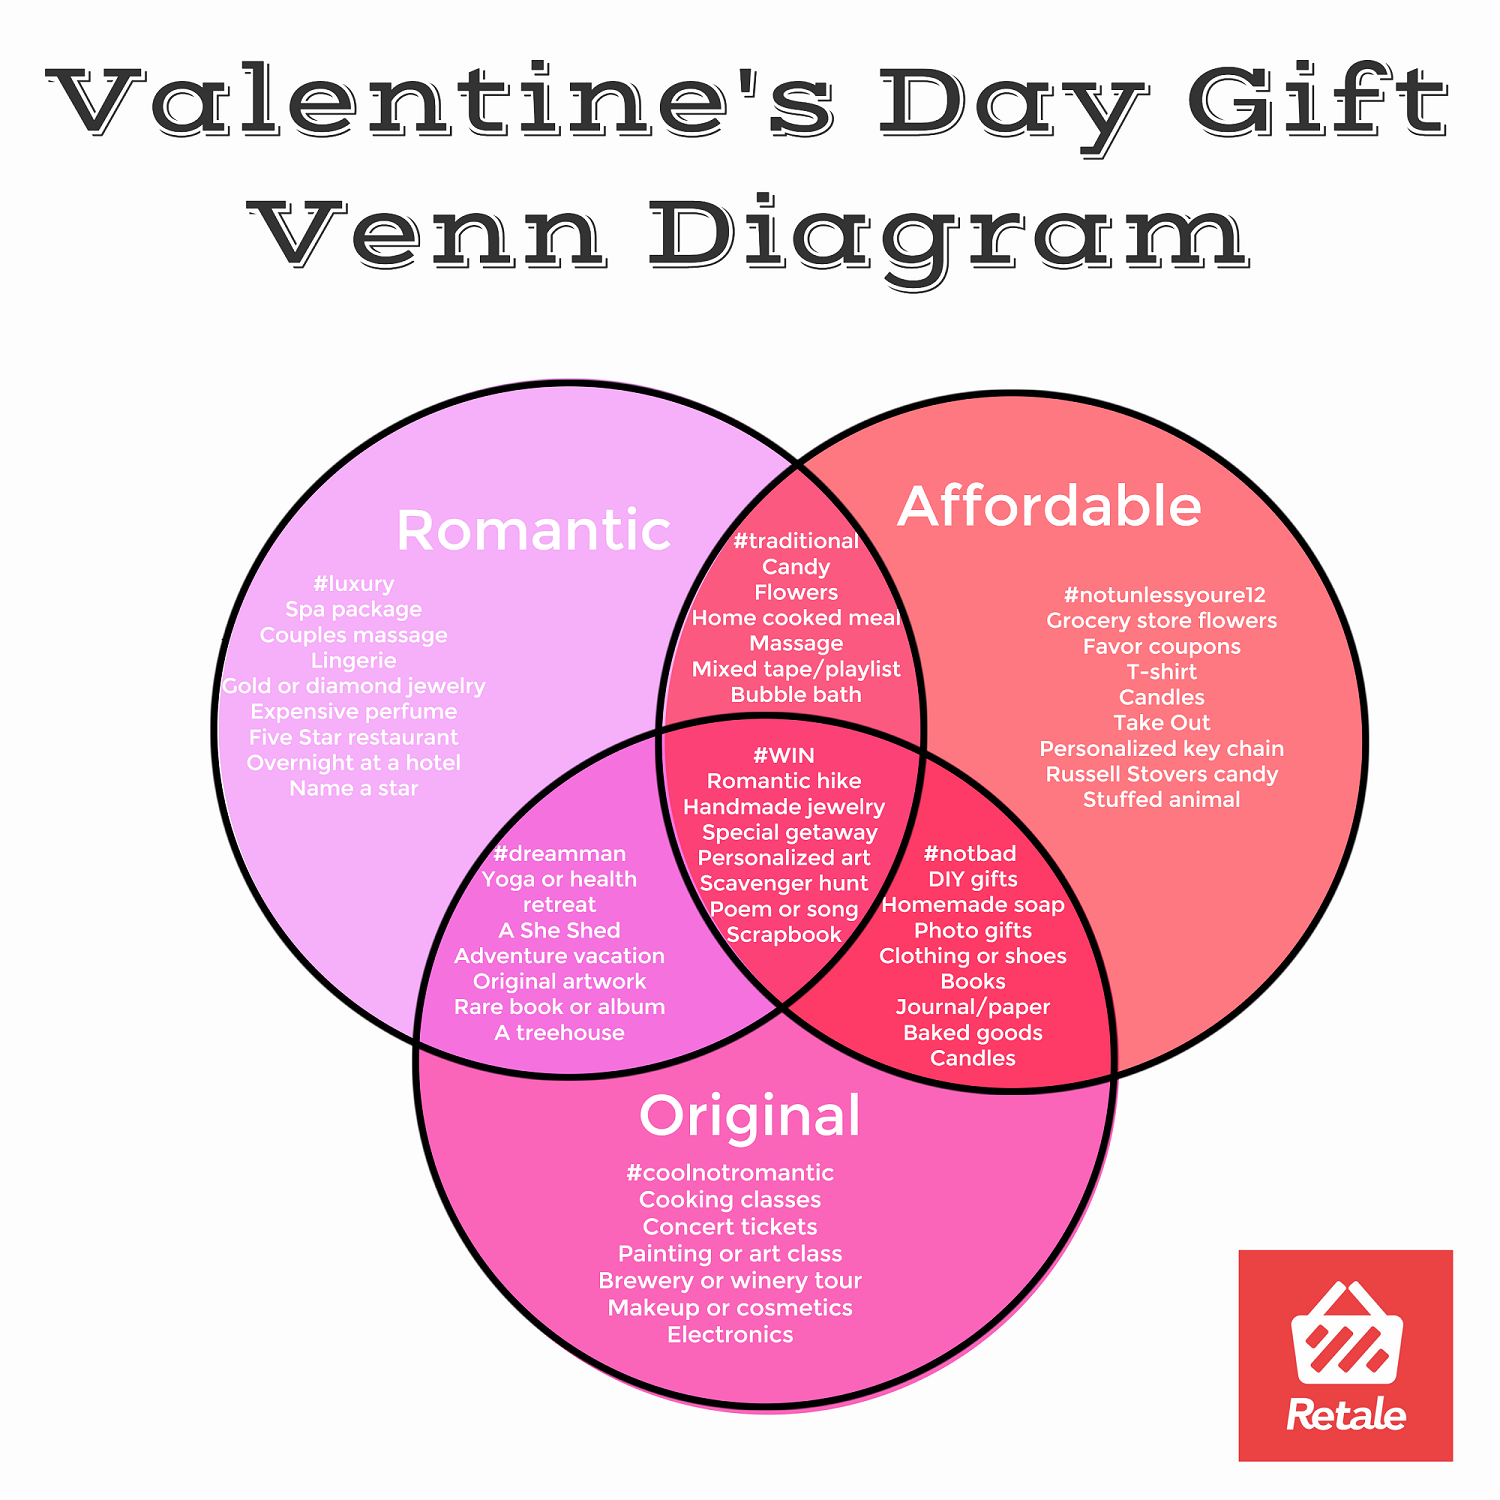 The Valentine's Gift Venn Diagram: See how affordability, originality, and romance converge to help you choose the perfect gift. Question is: are you #CoolNotRomantic or #Luxury?